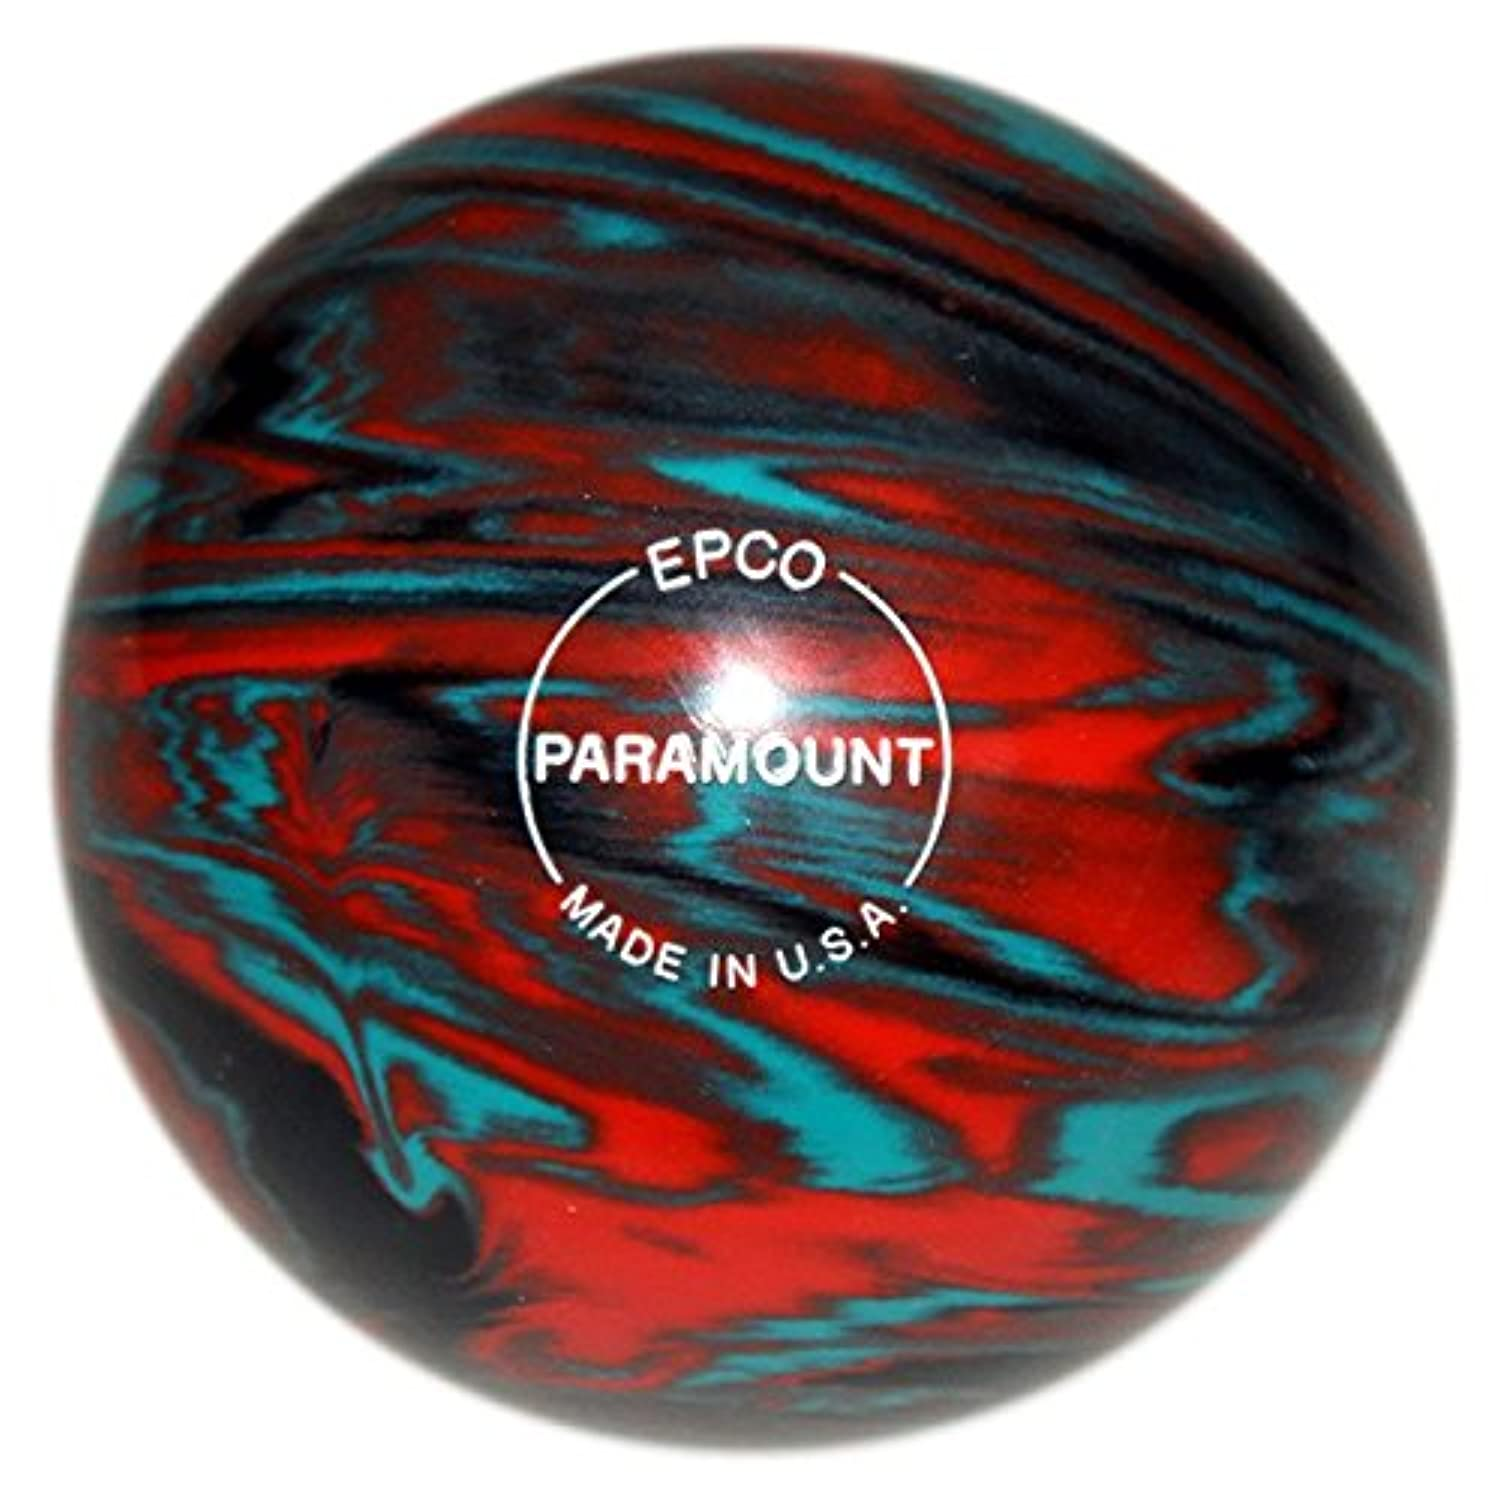 EPCO Paramount Marbleized Candlepin Bowling Ball – ティール、オレンジ&ブラック – 4ボールセット。。。